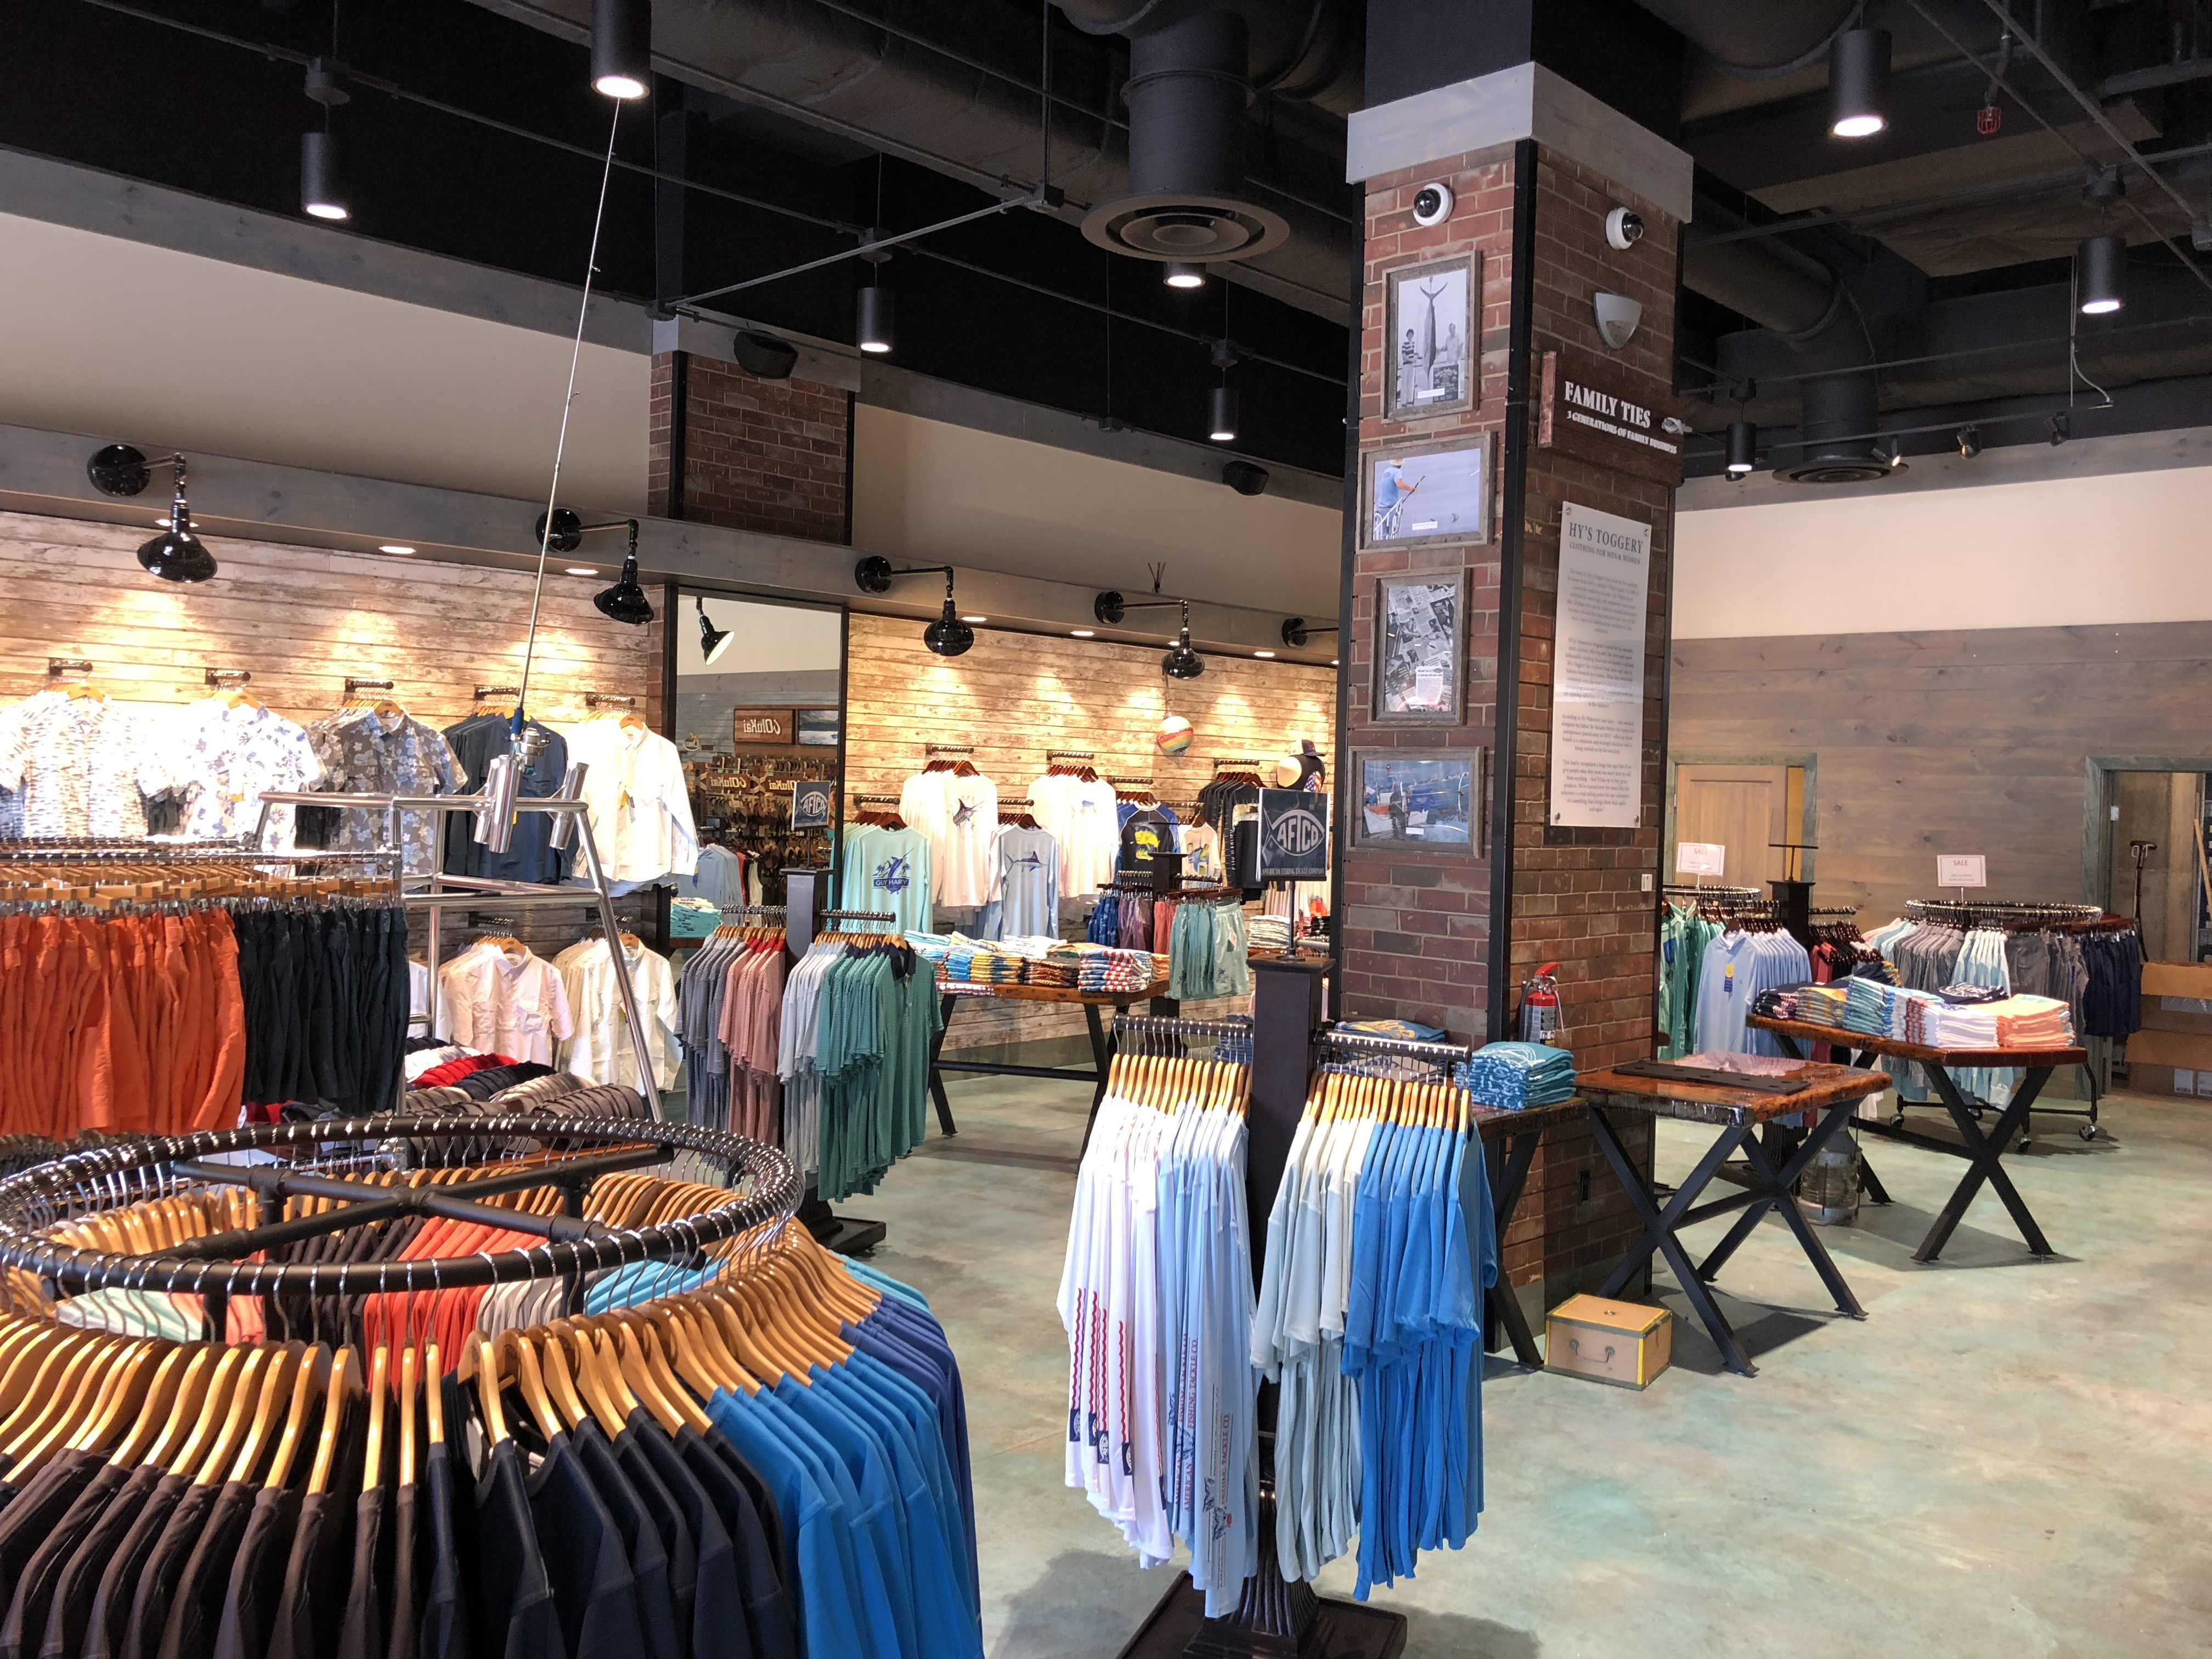 Retailers are a critical component of the sportfishing industry